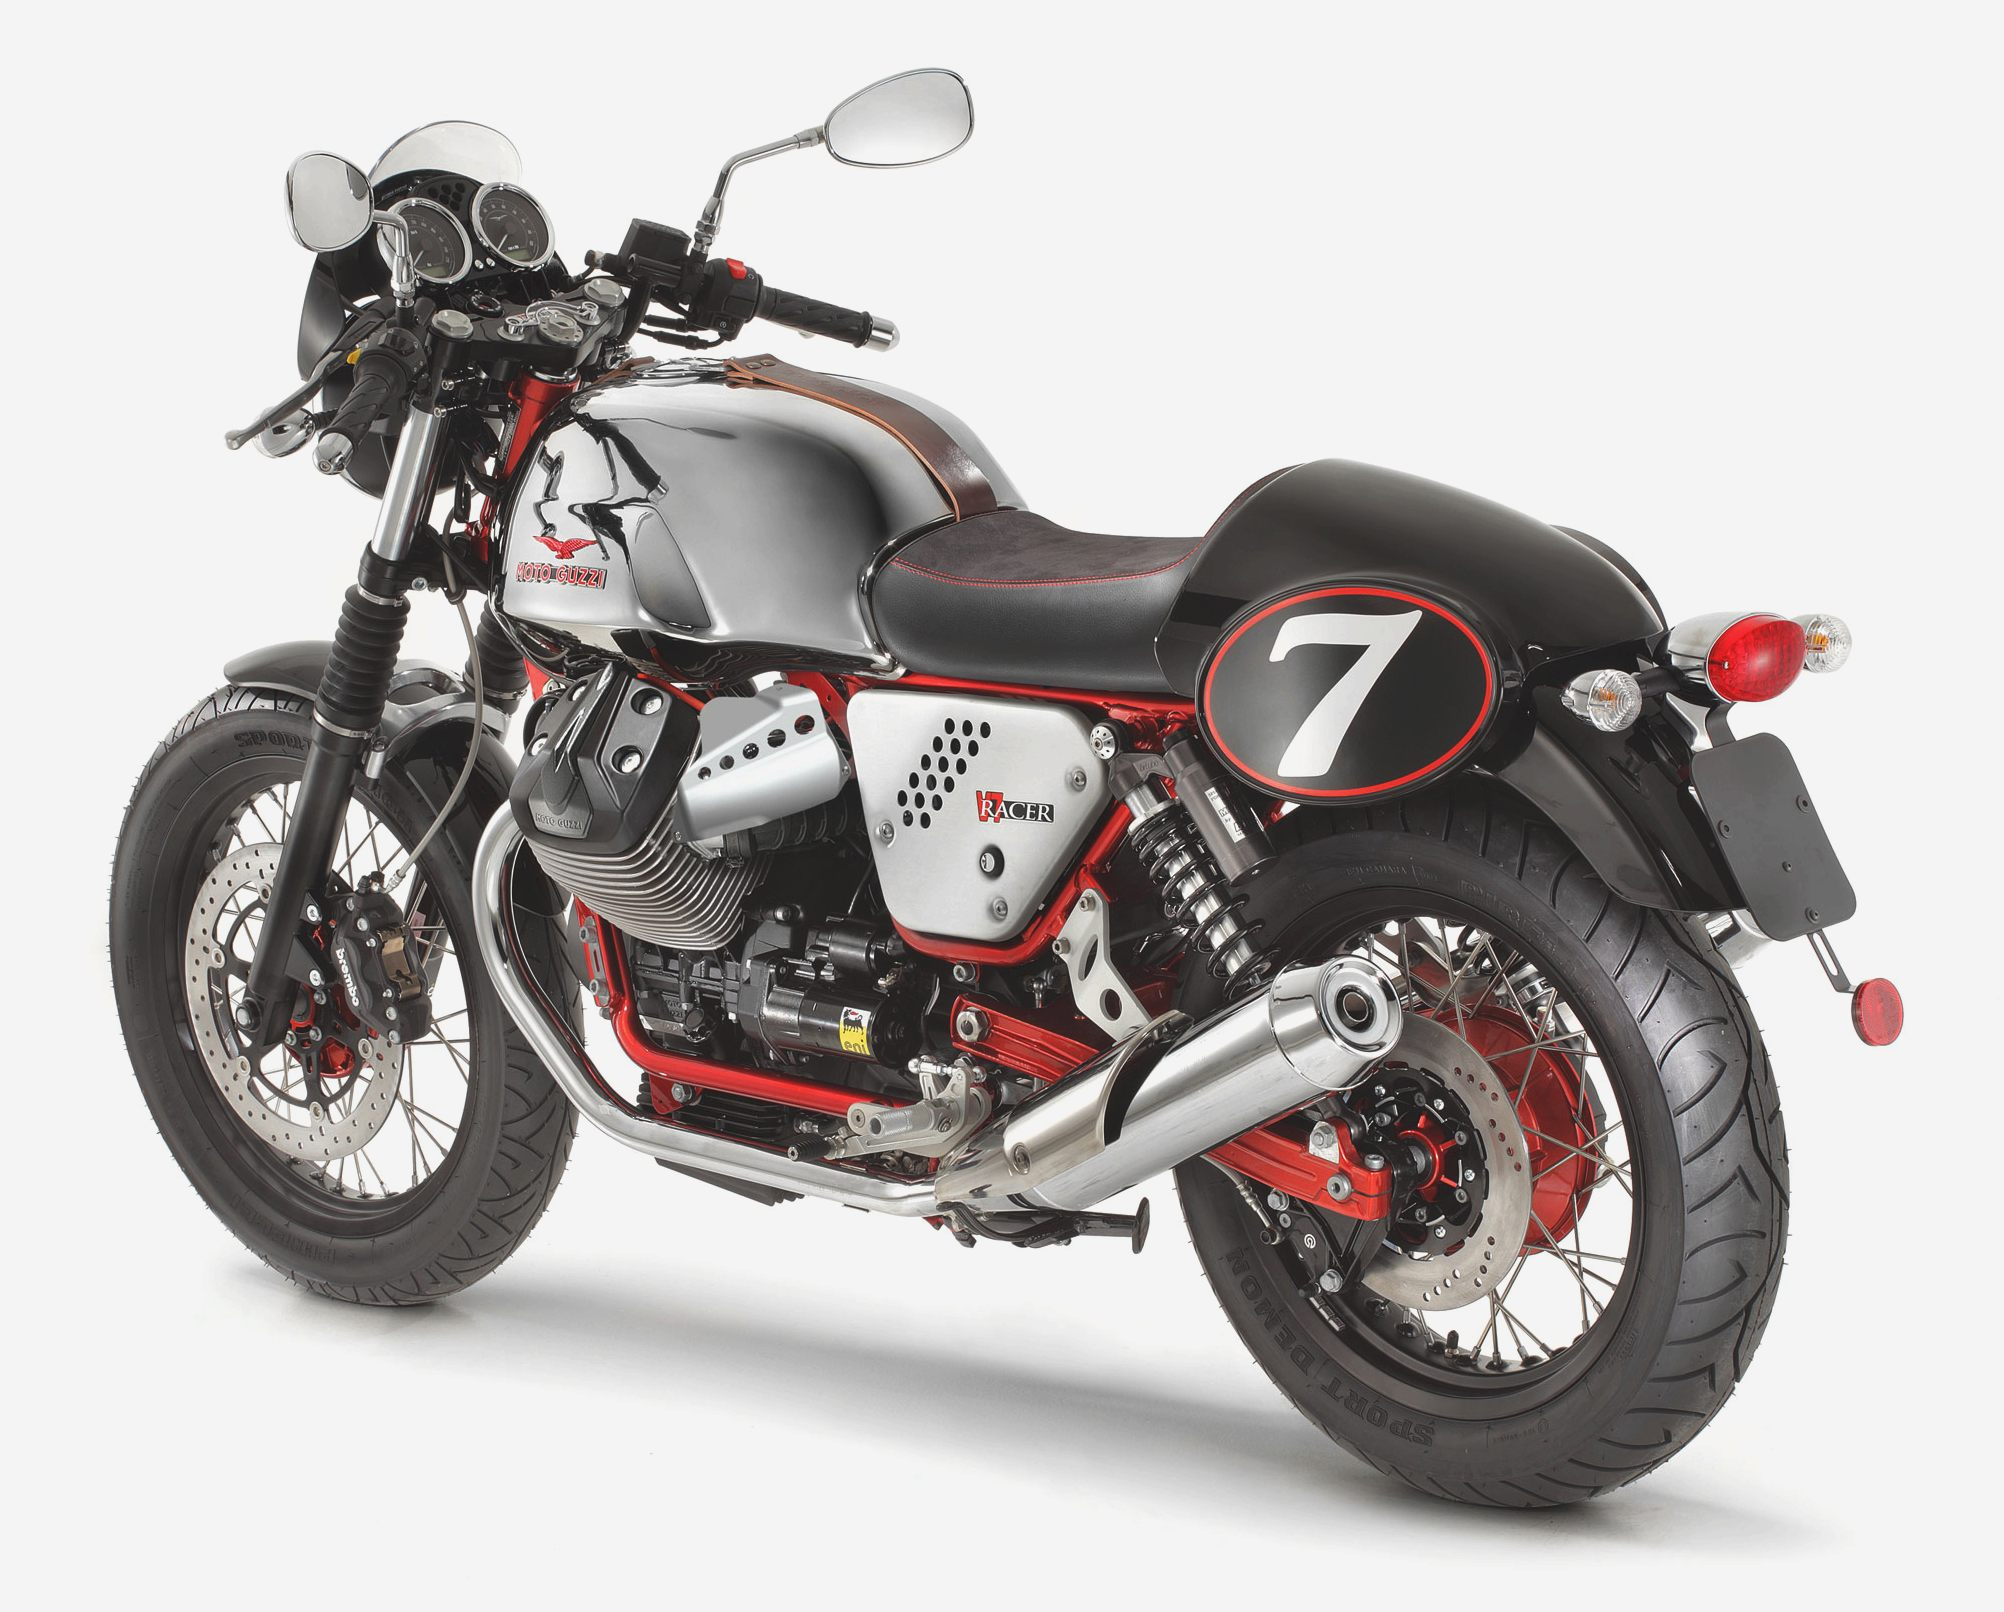 Moto Guzzi V7 Racer Limited Edition 2011 images #109580